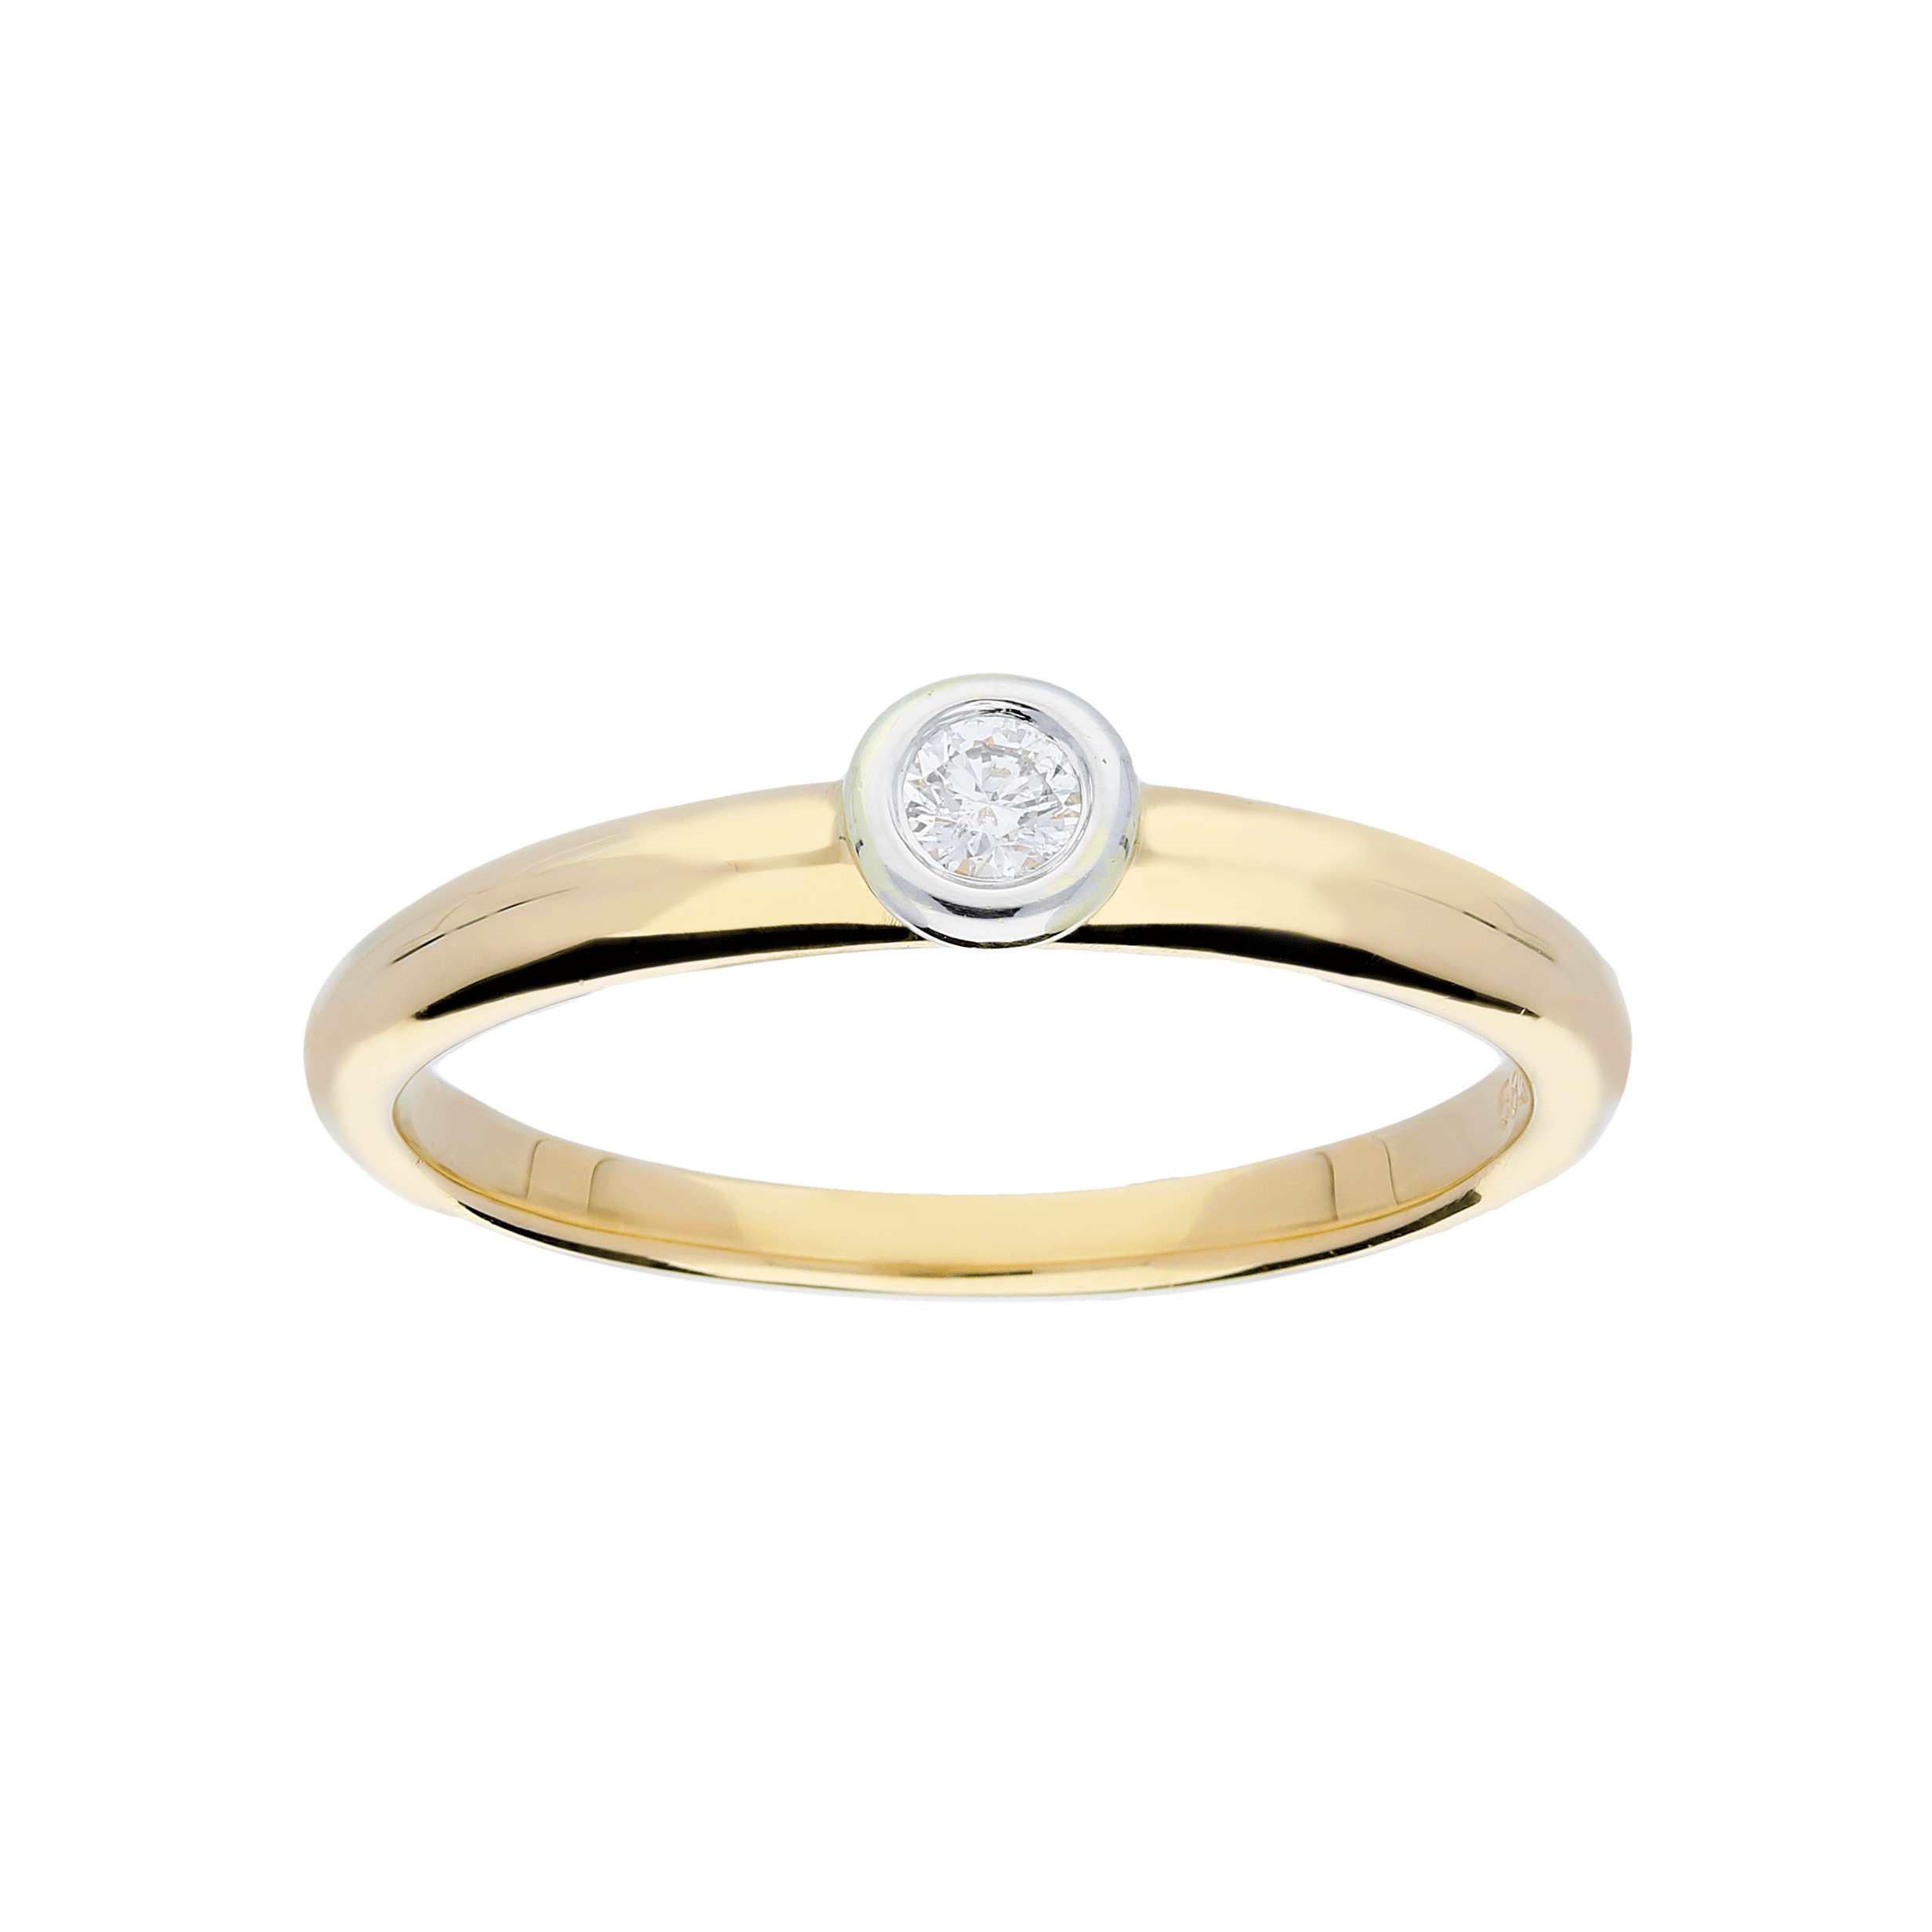 Glow Gouden Ring Bicolor Mat Glanzend Diamant 1 0.07ct G si 214.5209.56